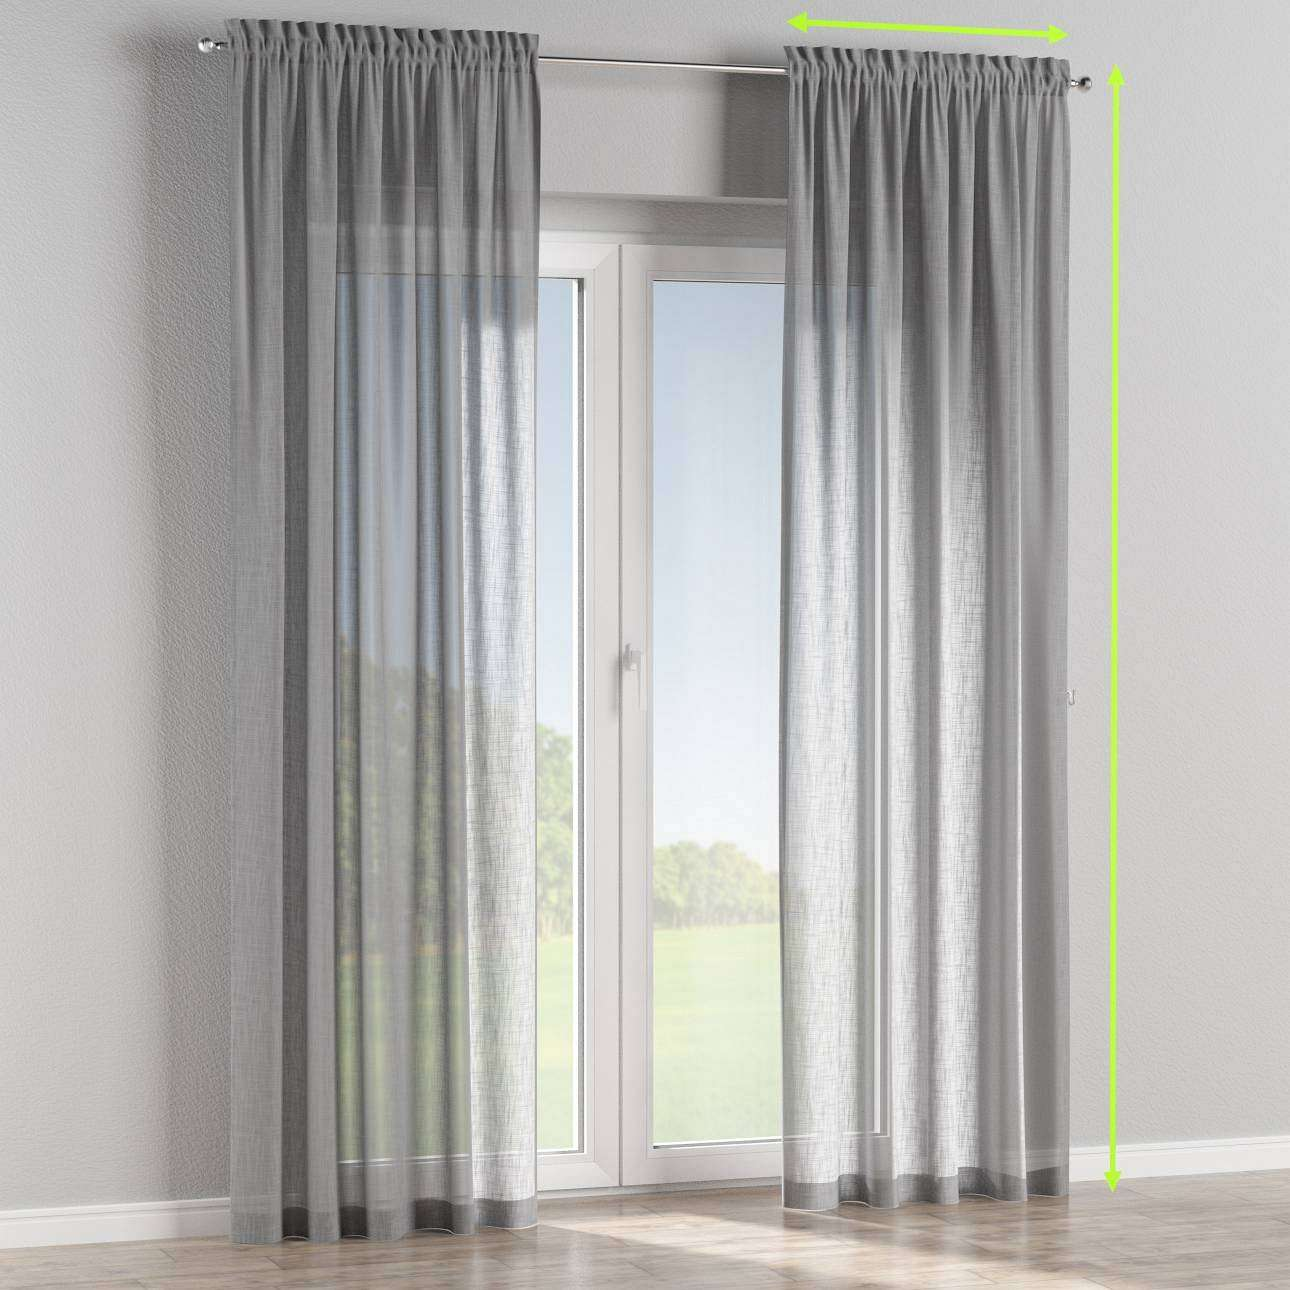 Slot and frill curtains in collection Romantica, fabric: 128-08